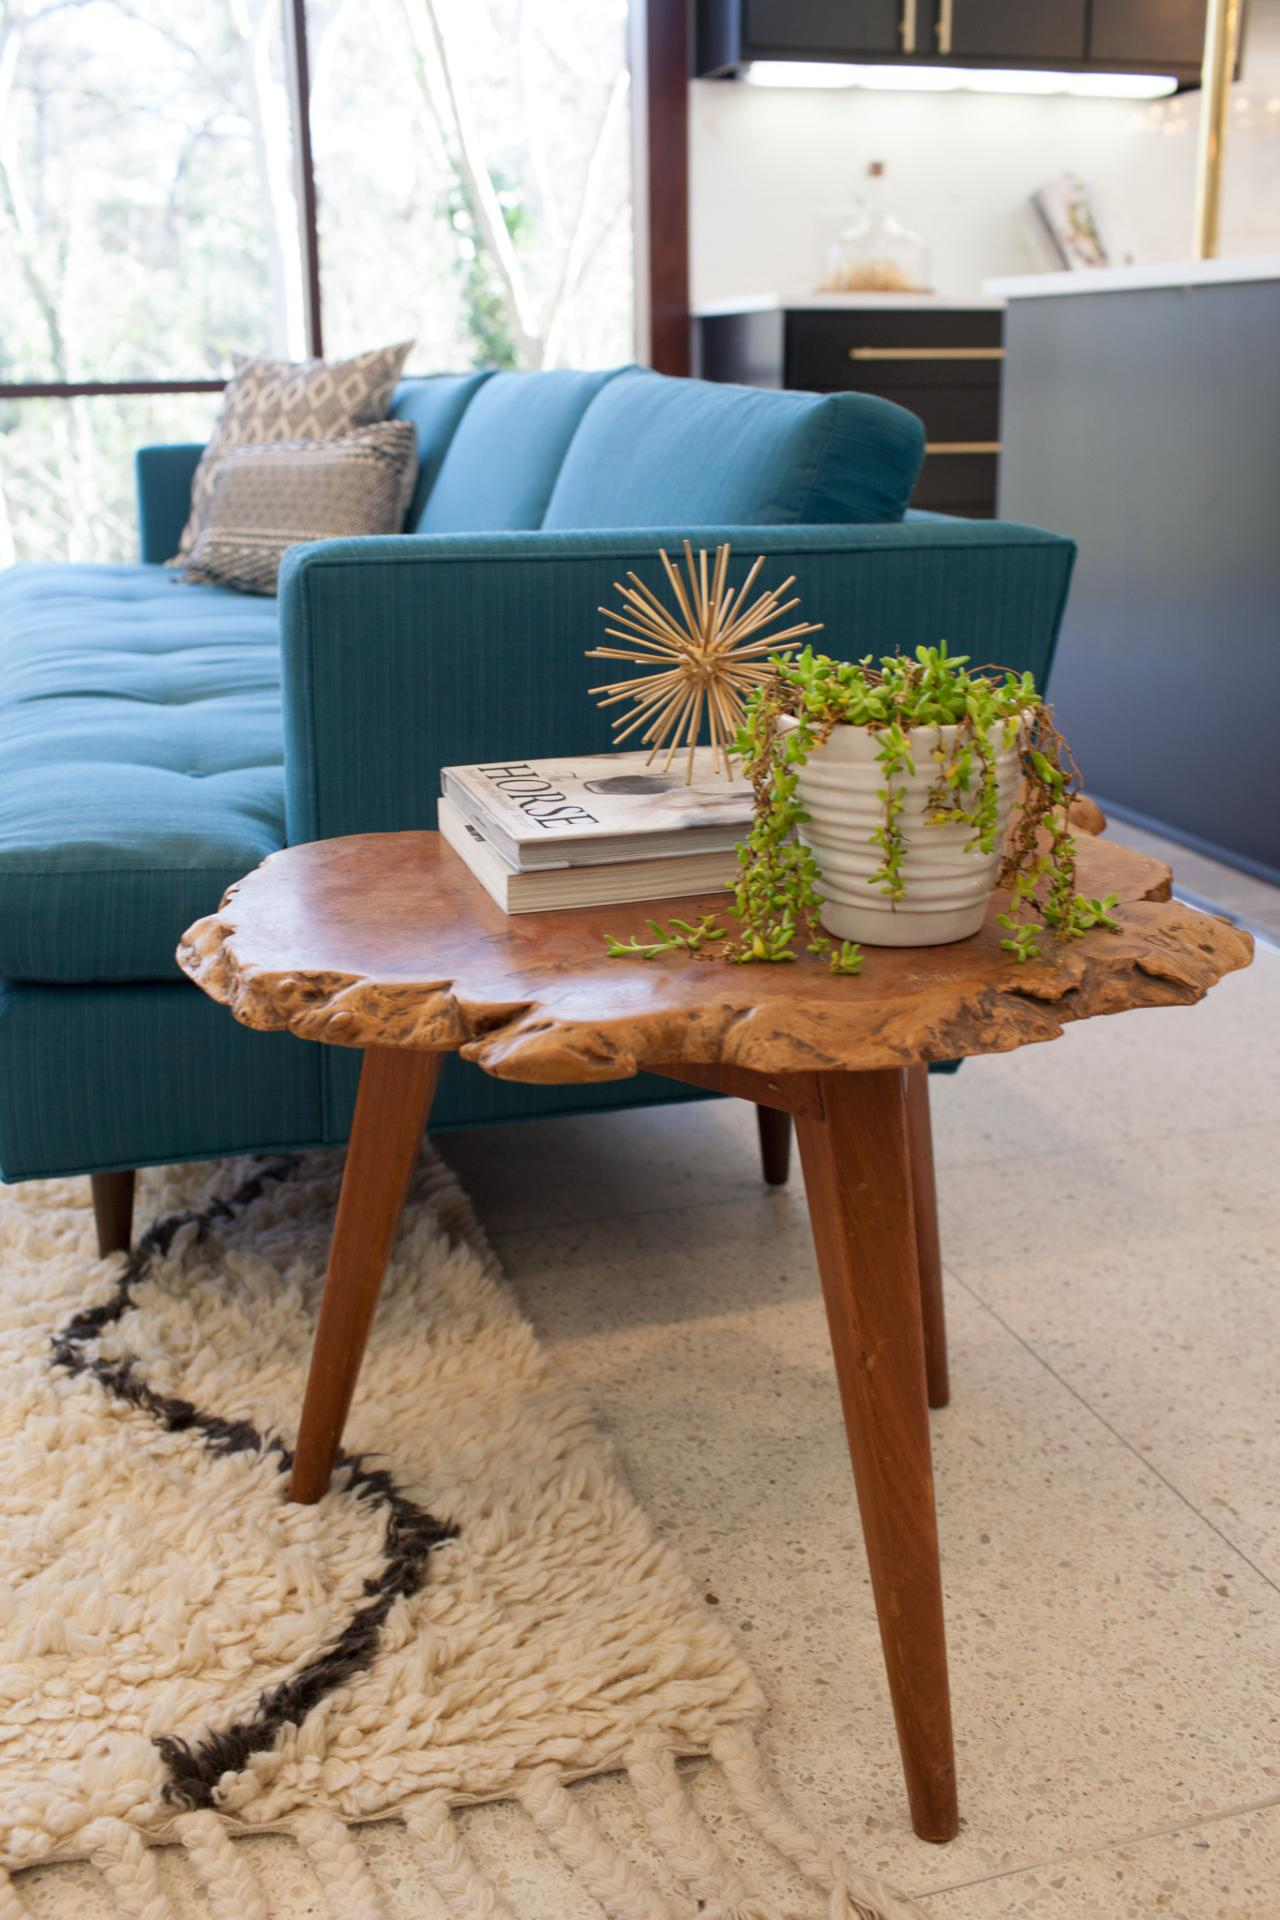 Thursday Things: Live Edge with Fixer Upper's Chip and Joanna Gaines from HGTV